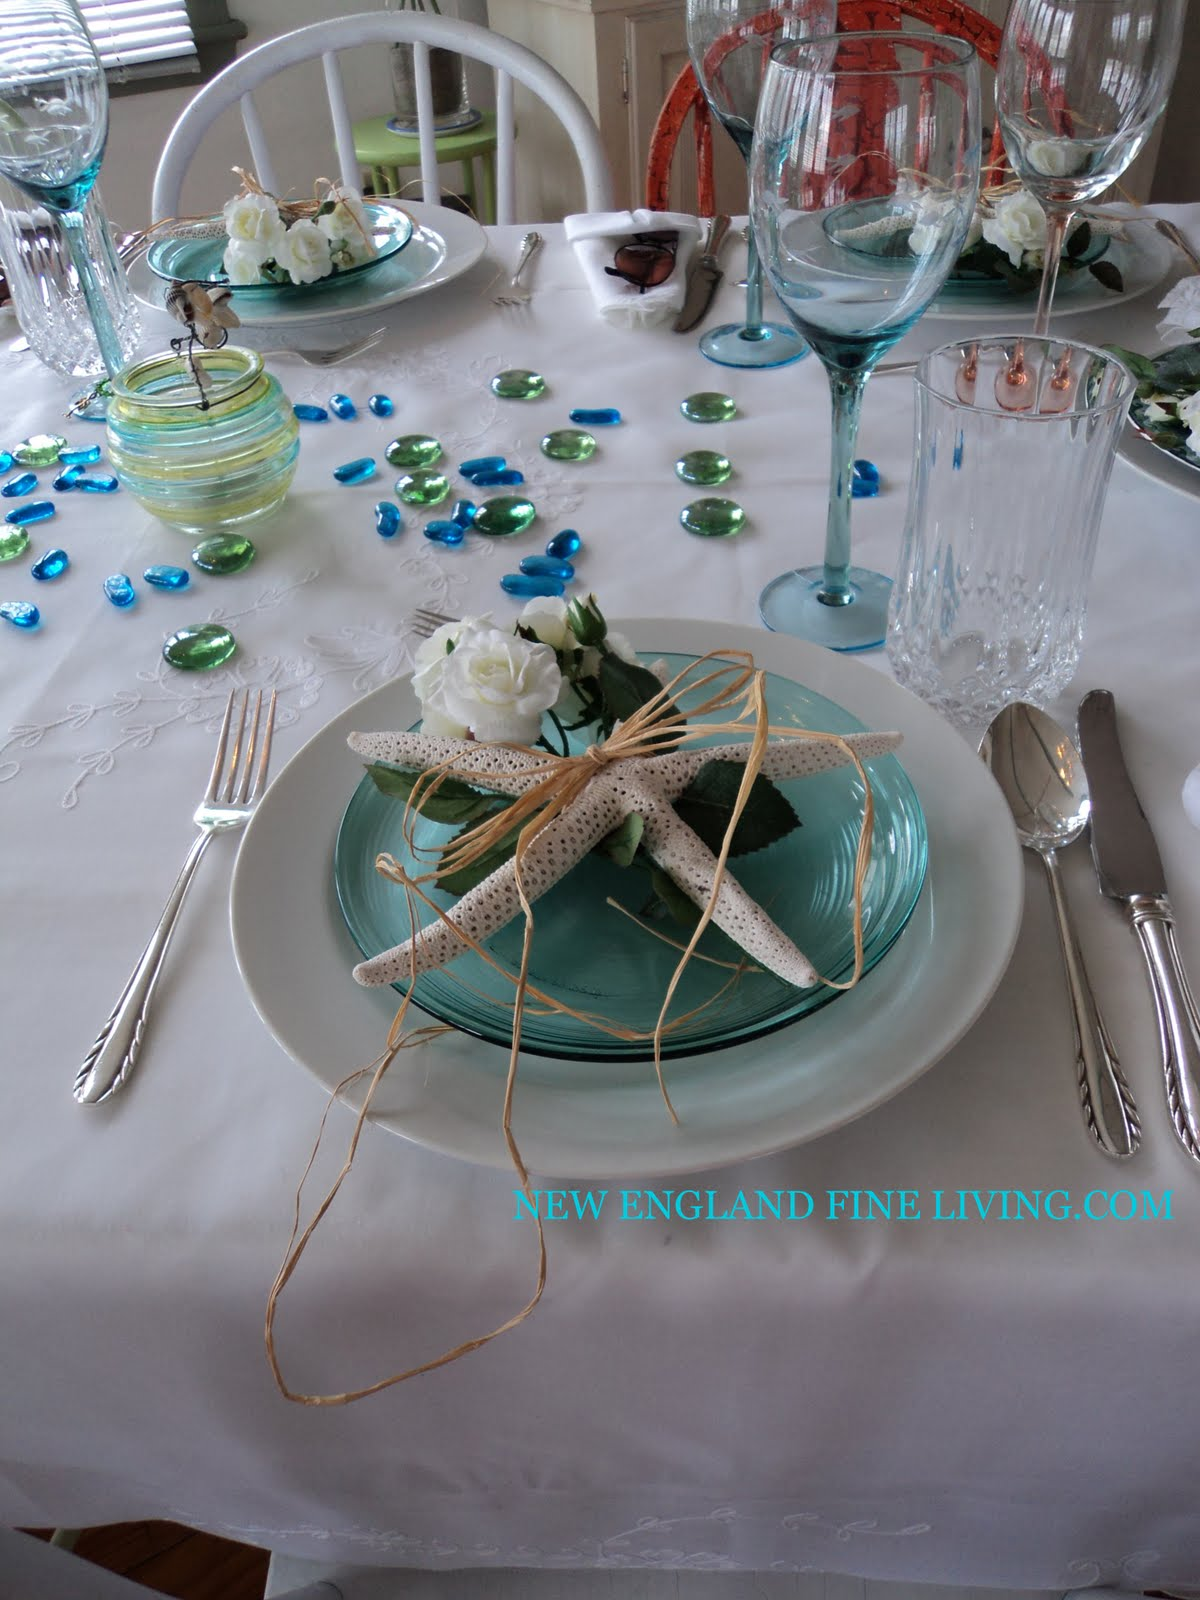 The fine living muse beach and garden themed party - Beach theme decorating ideas ...